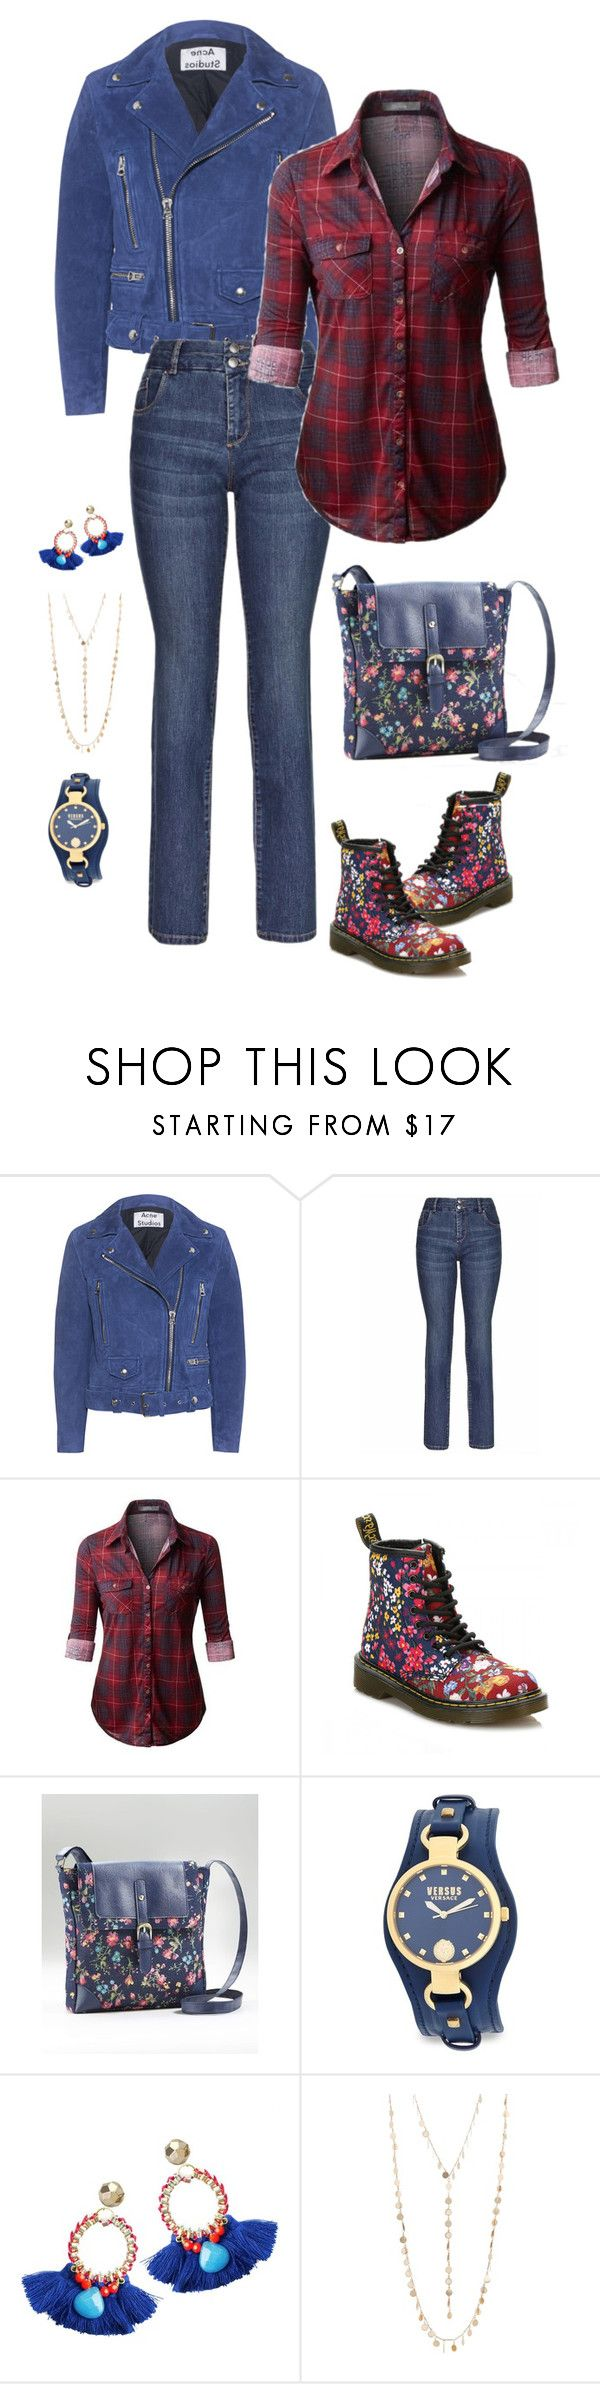 """""""Geen titel #481"""" by miriam-witte ❤ liked on Polyvore featuring Acne Studios, Dr. Martens, Versus and Natasha"""